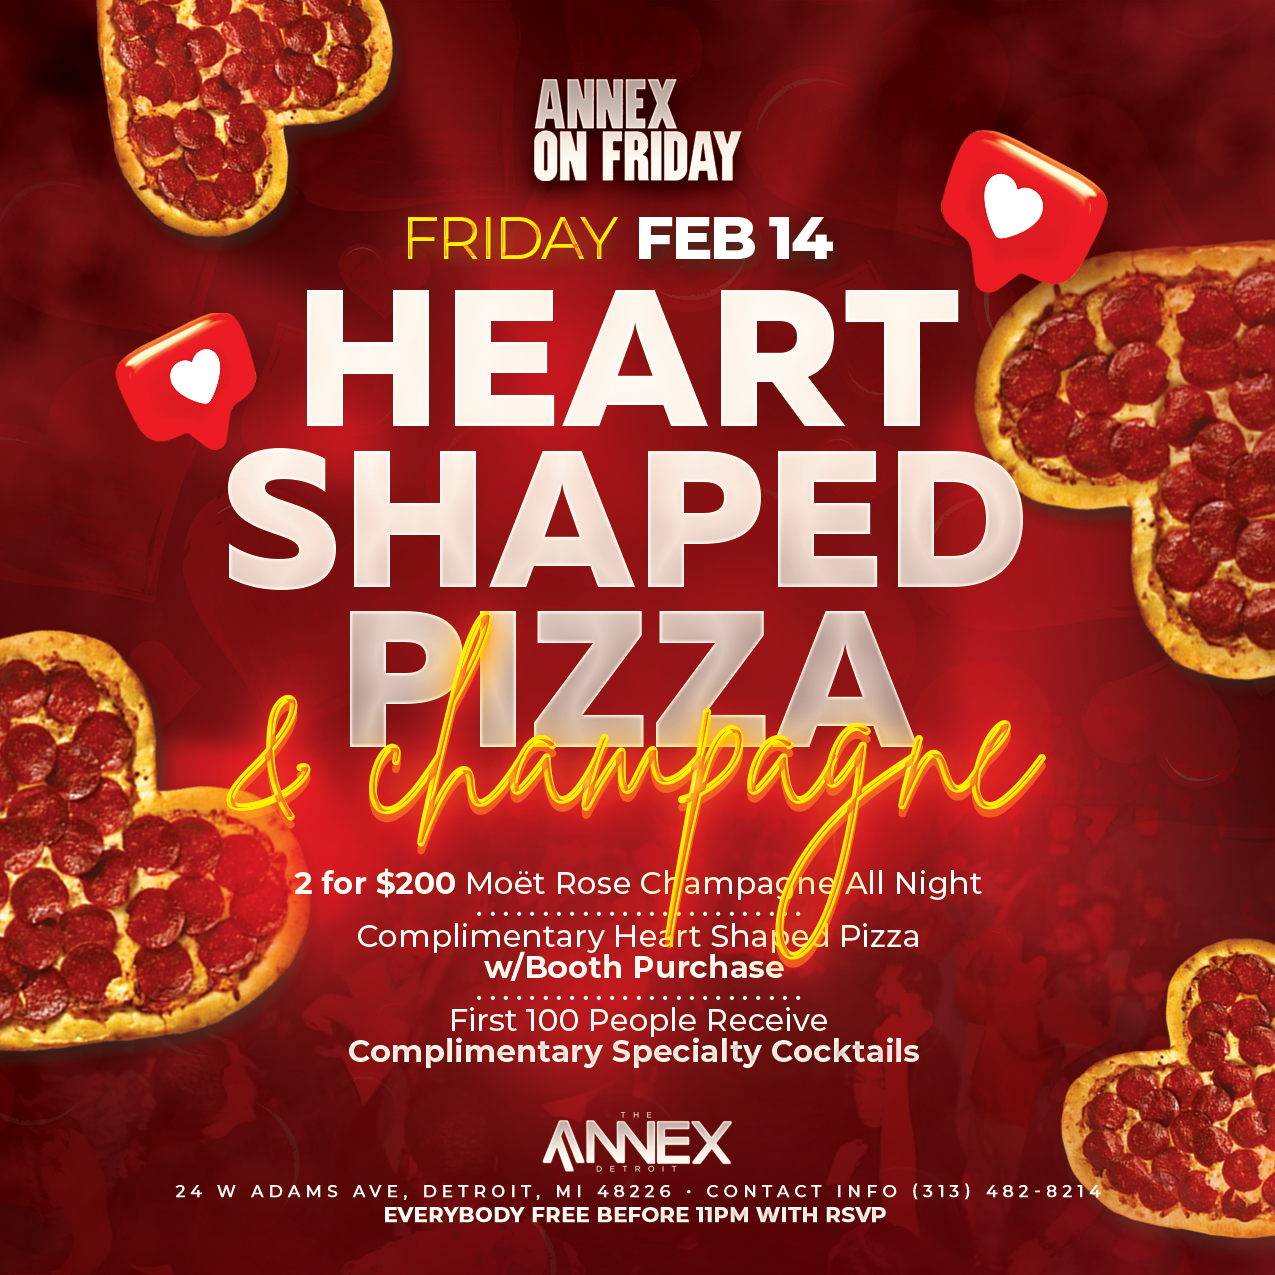 Annex On Friday presents Heart Shaped Pizza & Champagne on February 14th!